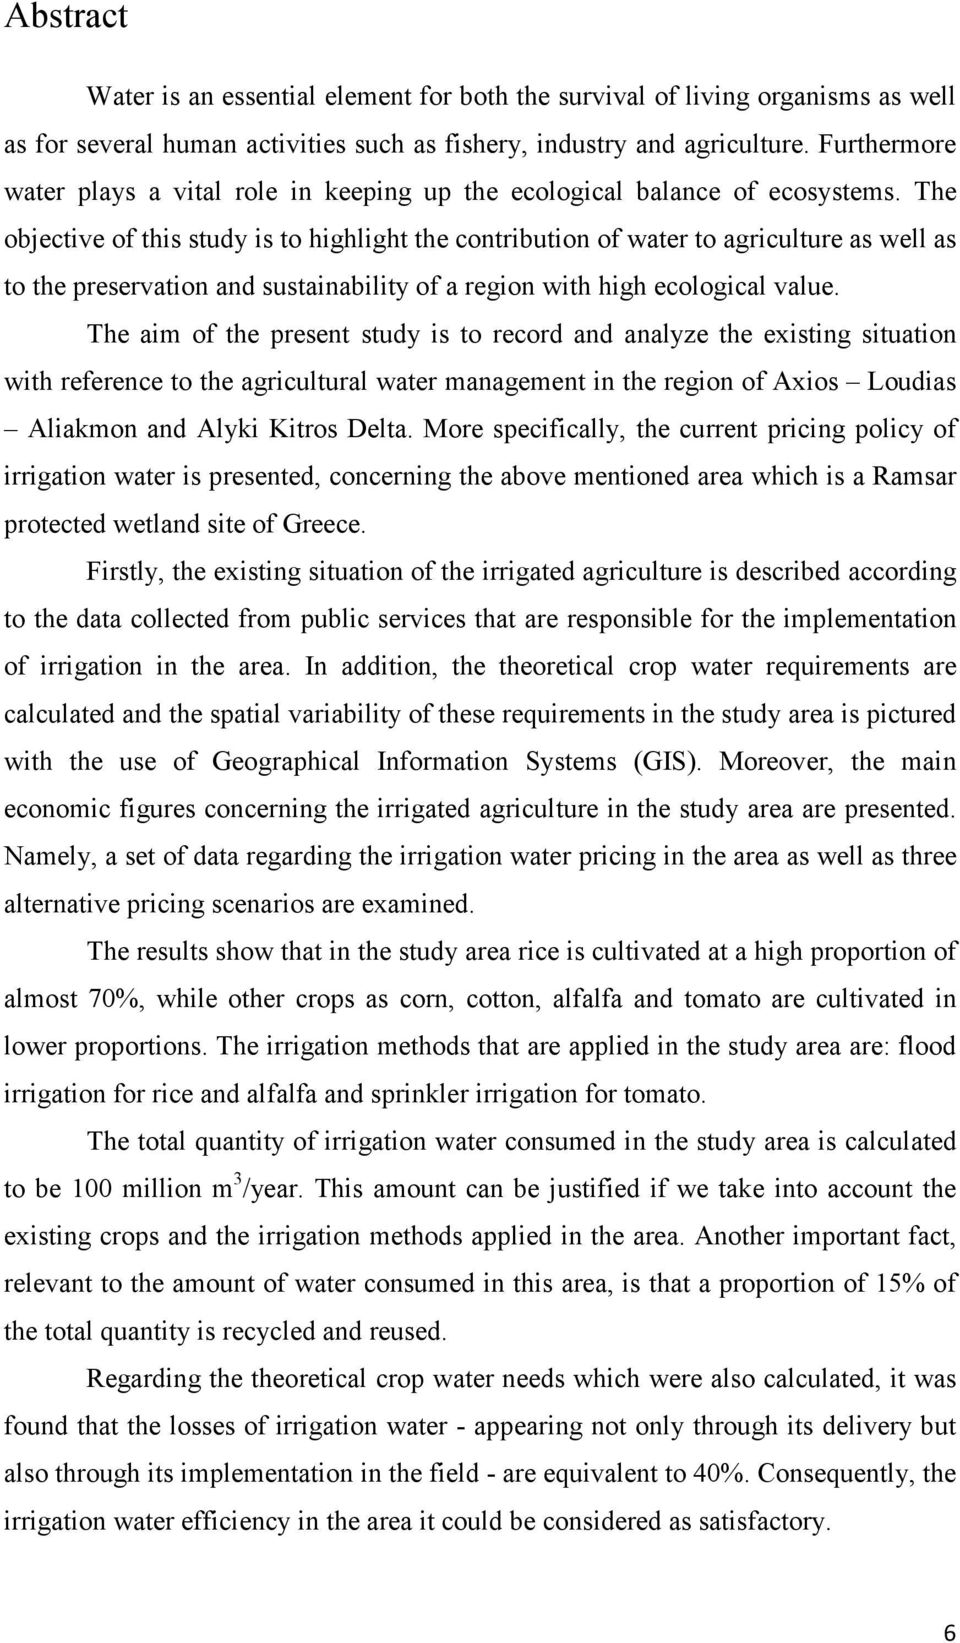 The objective of this study is to highlight the contribution of water to agriculture as well as to the preservation and sustainability of a region with high ecological value.